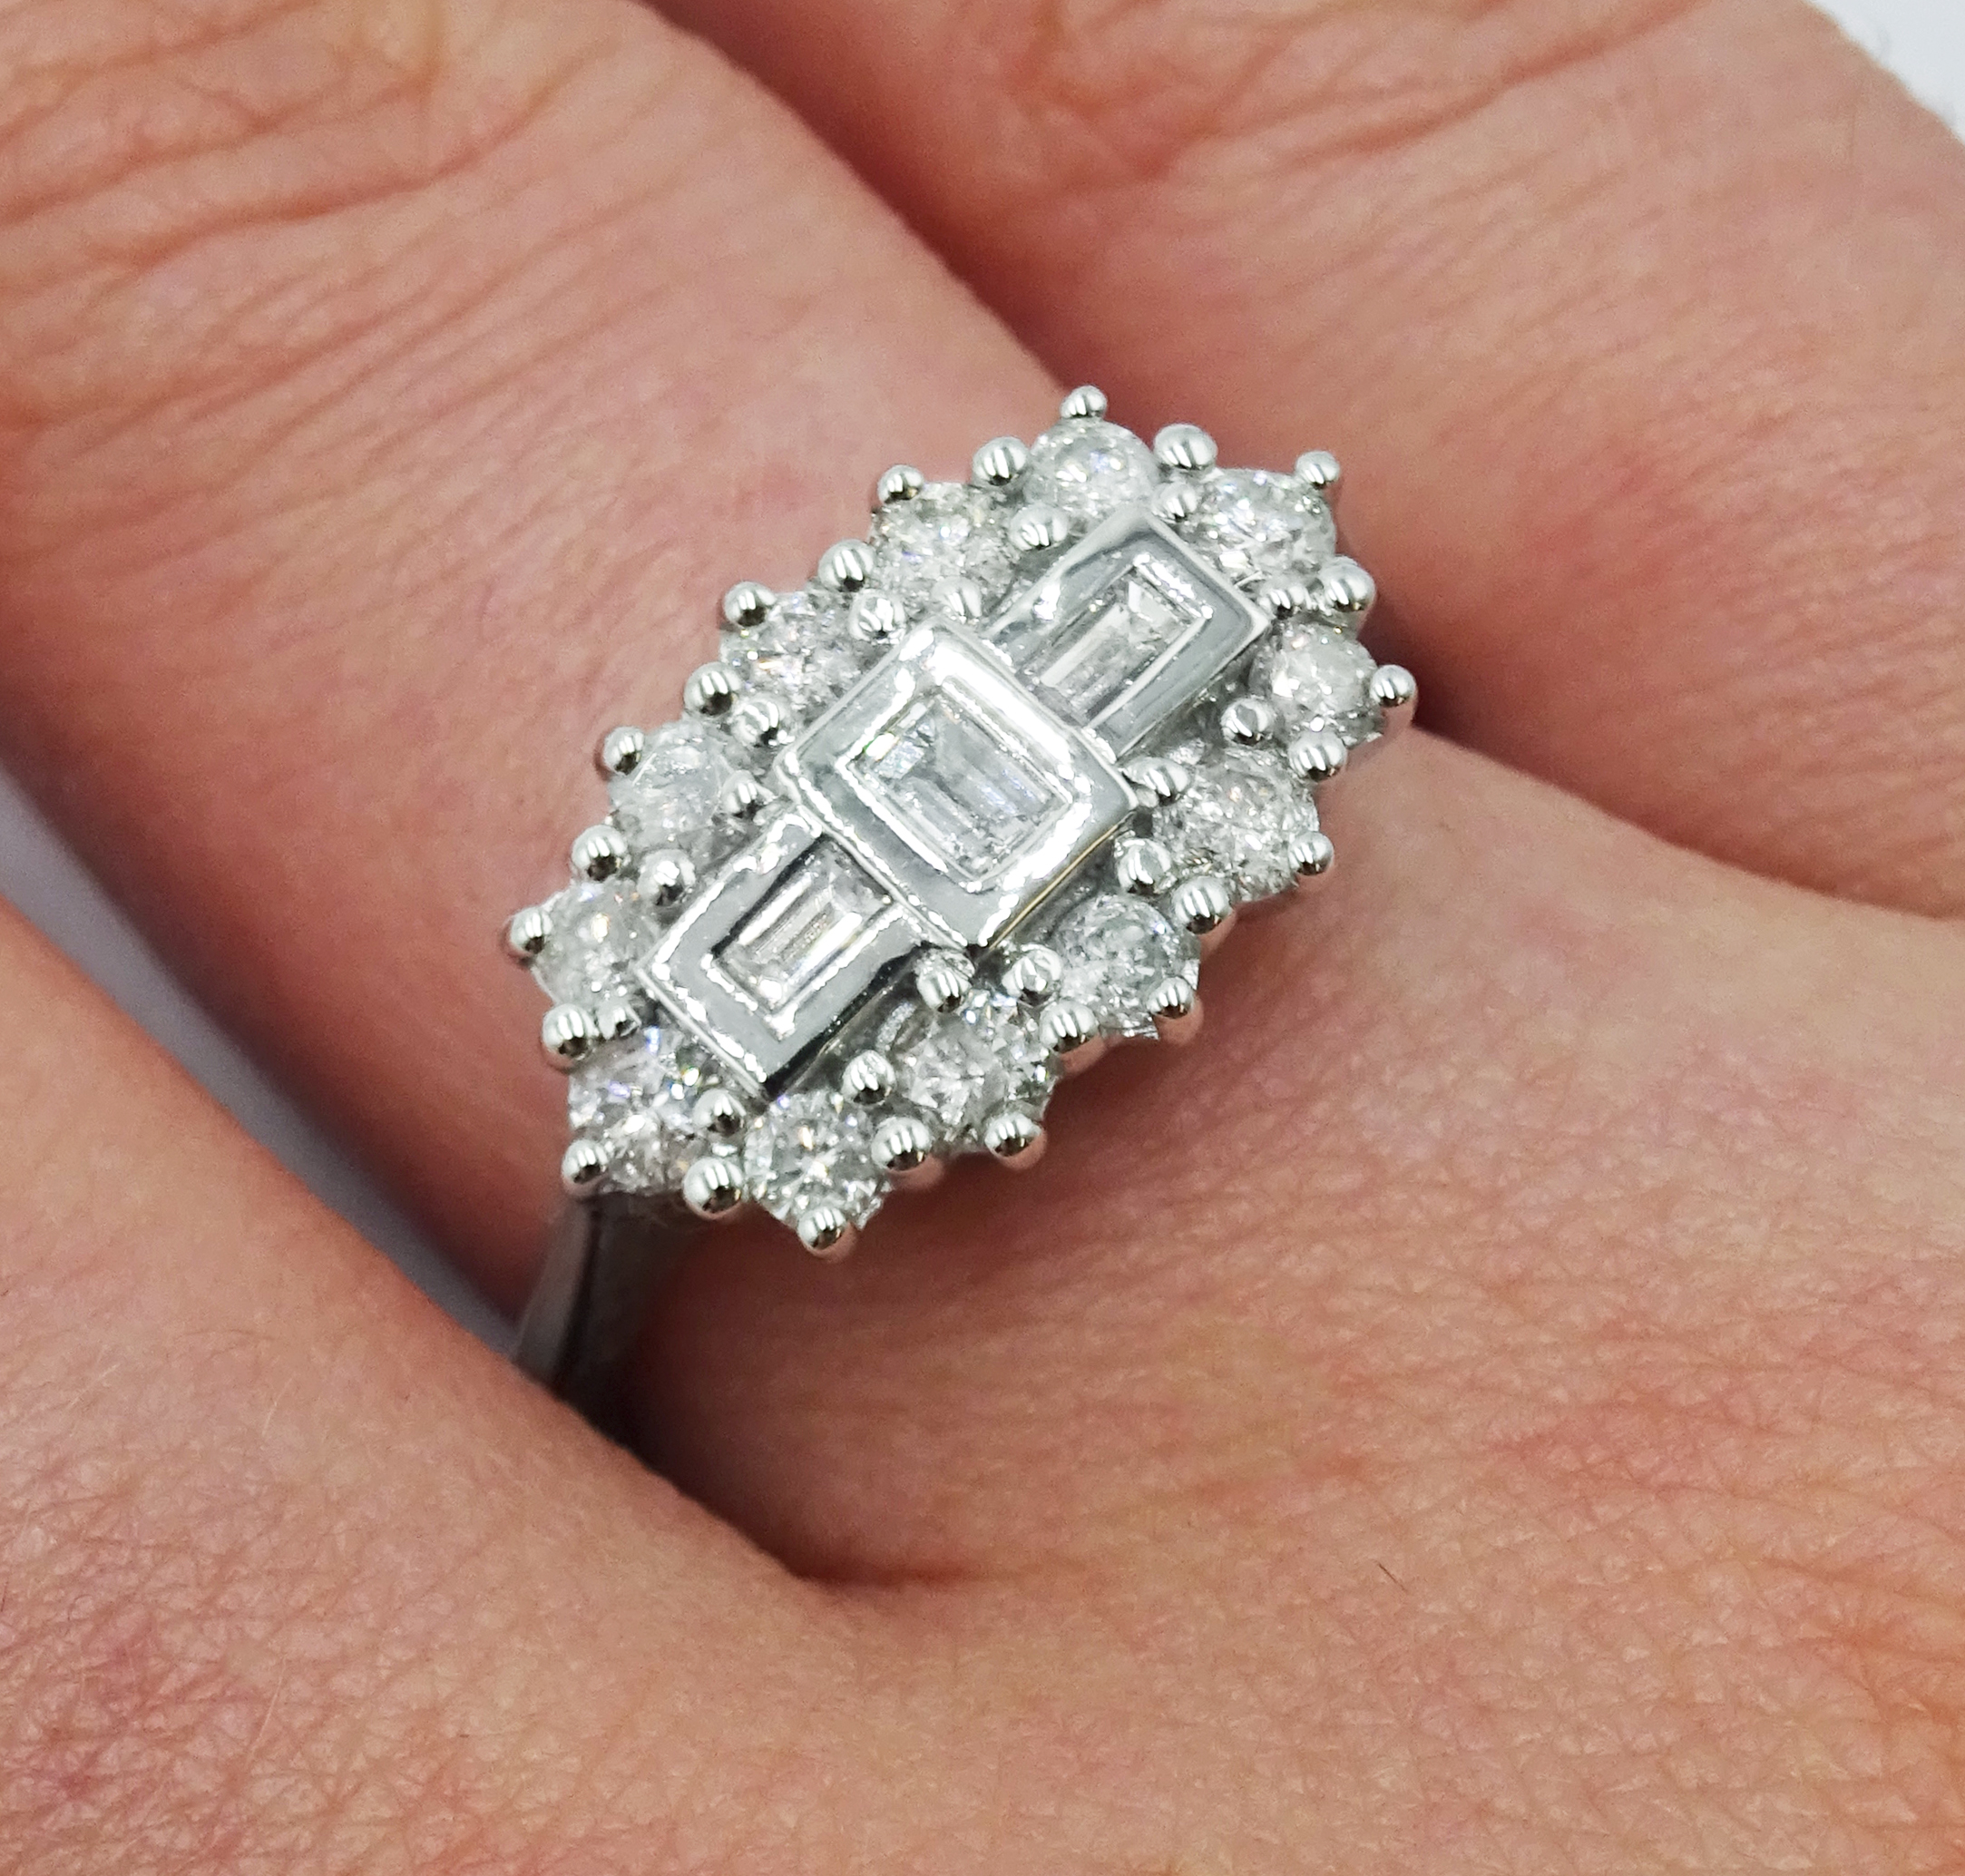 18ct white gold and diamond cluster ring, diamond total weight 0.75 carat, free UK mainland shipping - Image 2 of 6